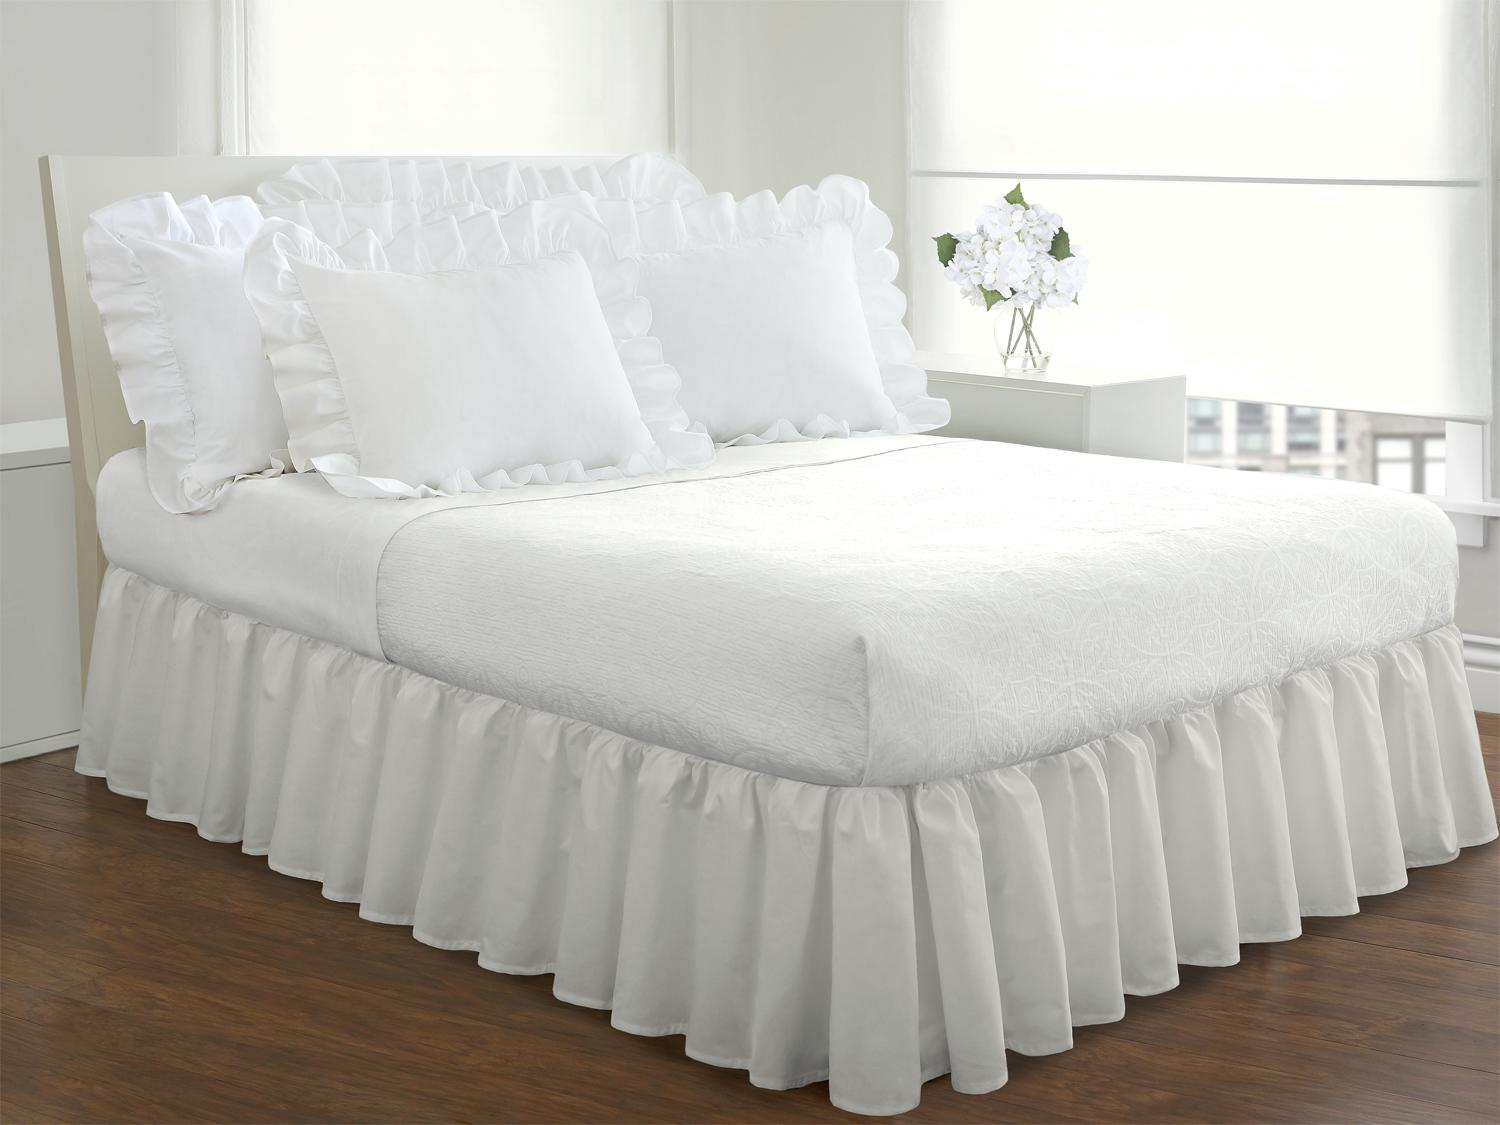 fresh ideas bedding ruffled bed skirt classic 14 drop length gathered ebay. Black Bedroom Furniture Sets. Home Design Ideas